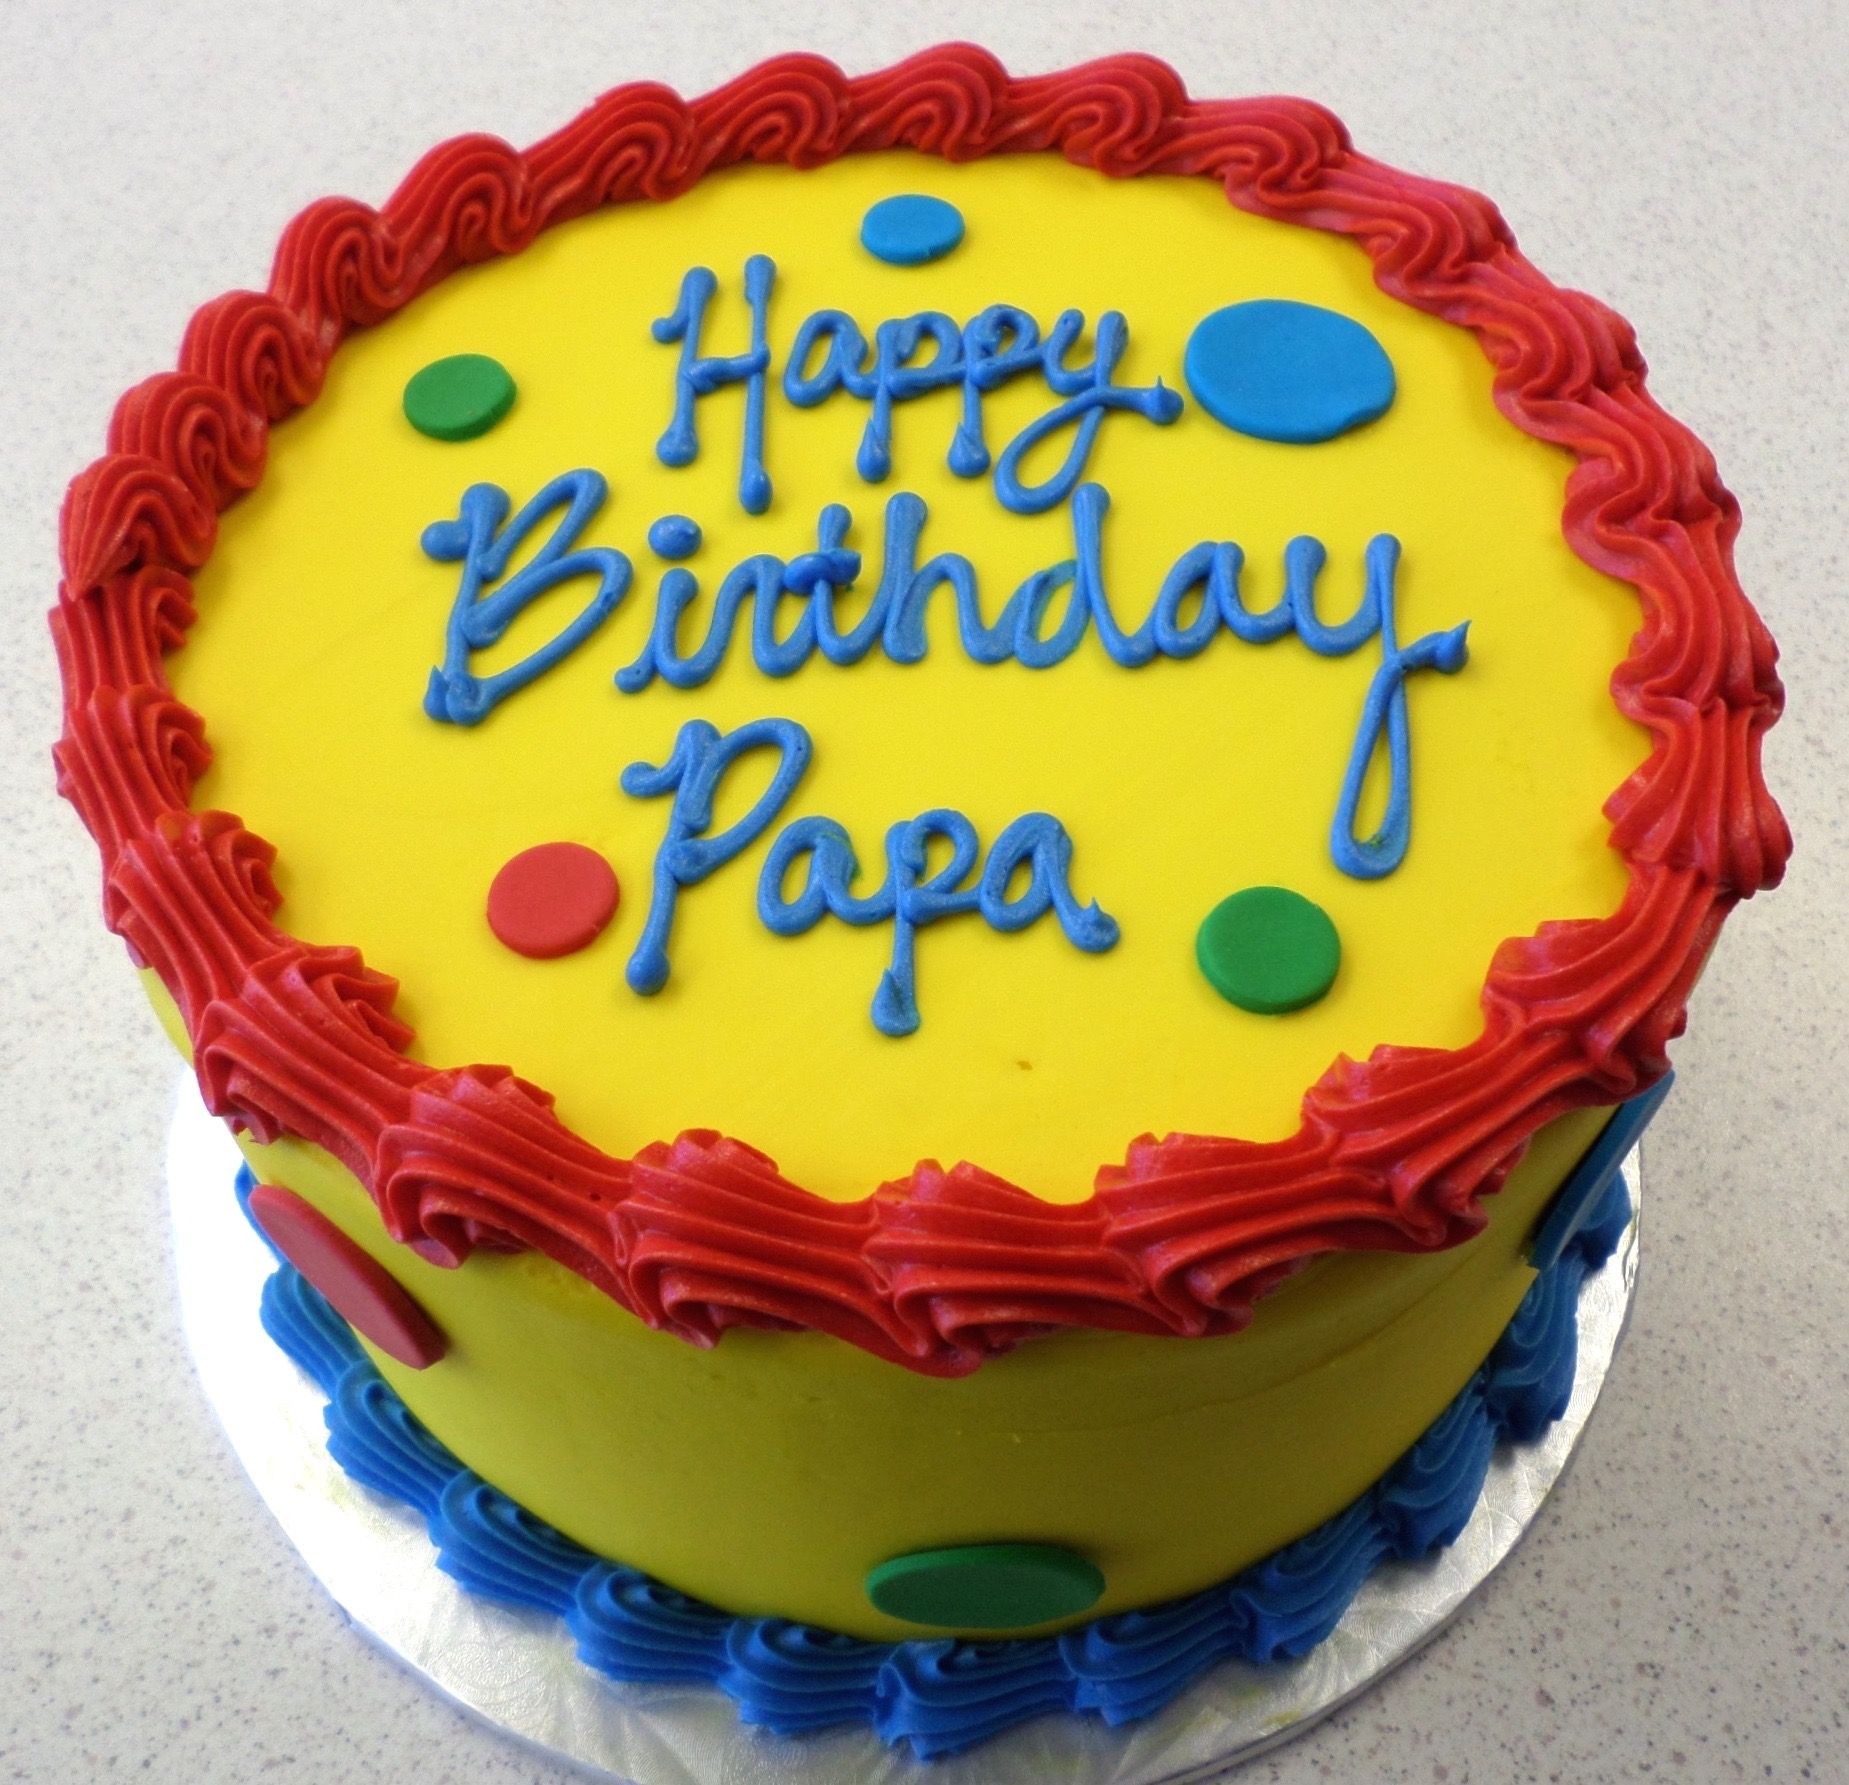 Birthday Cake Image For Papa : Happy Birthday Papa Cake Our Cakes Pinterest Happy ...